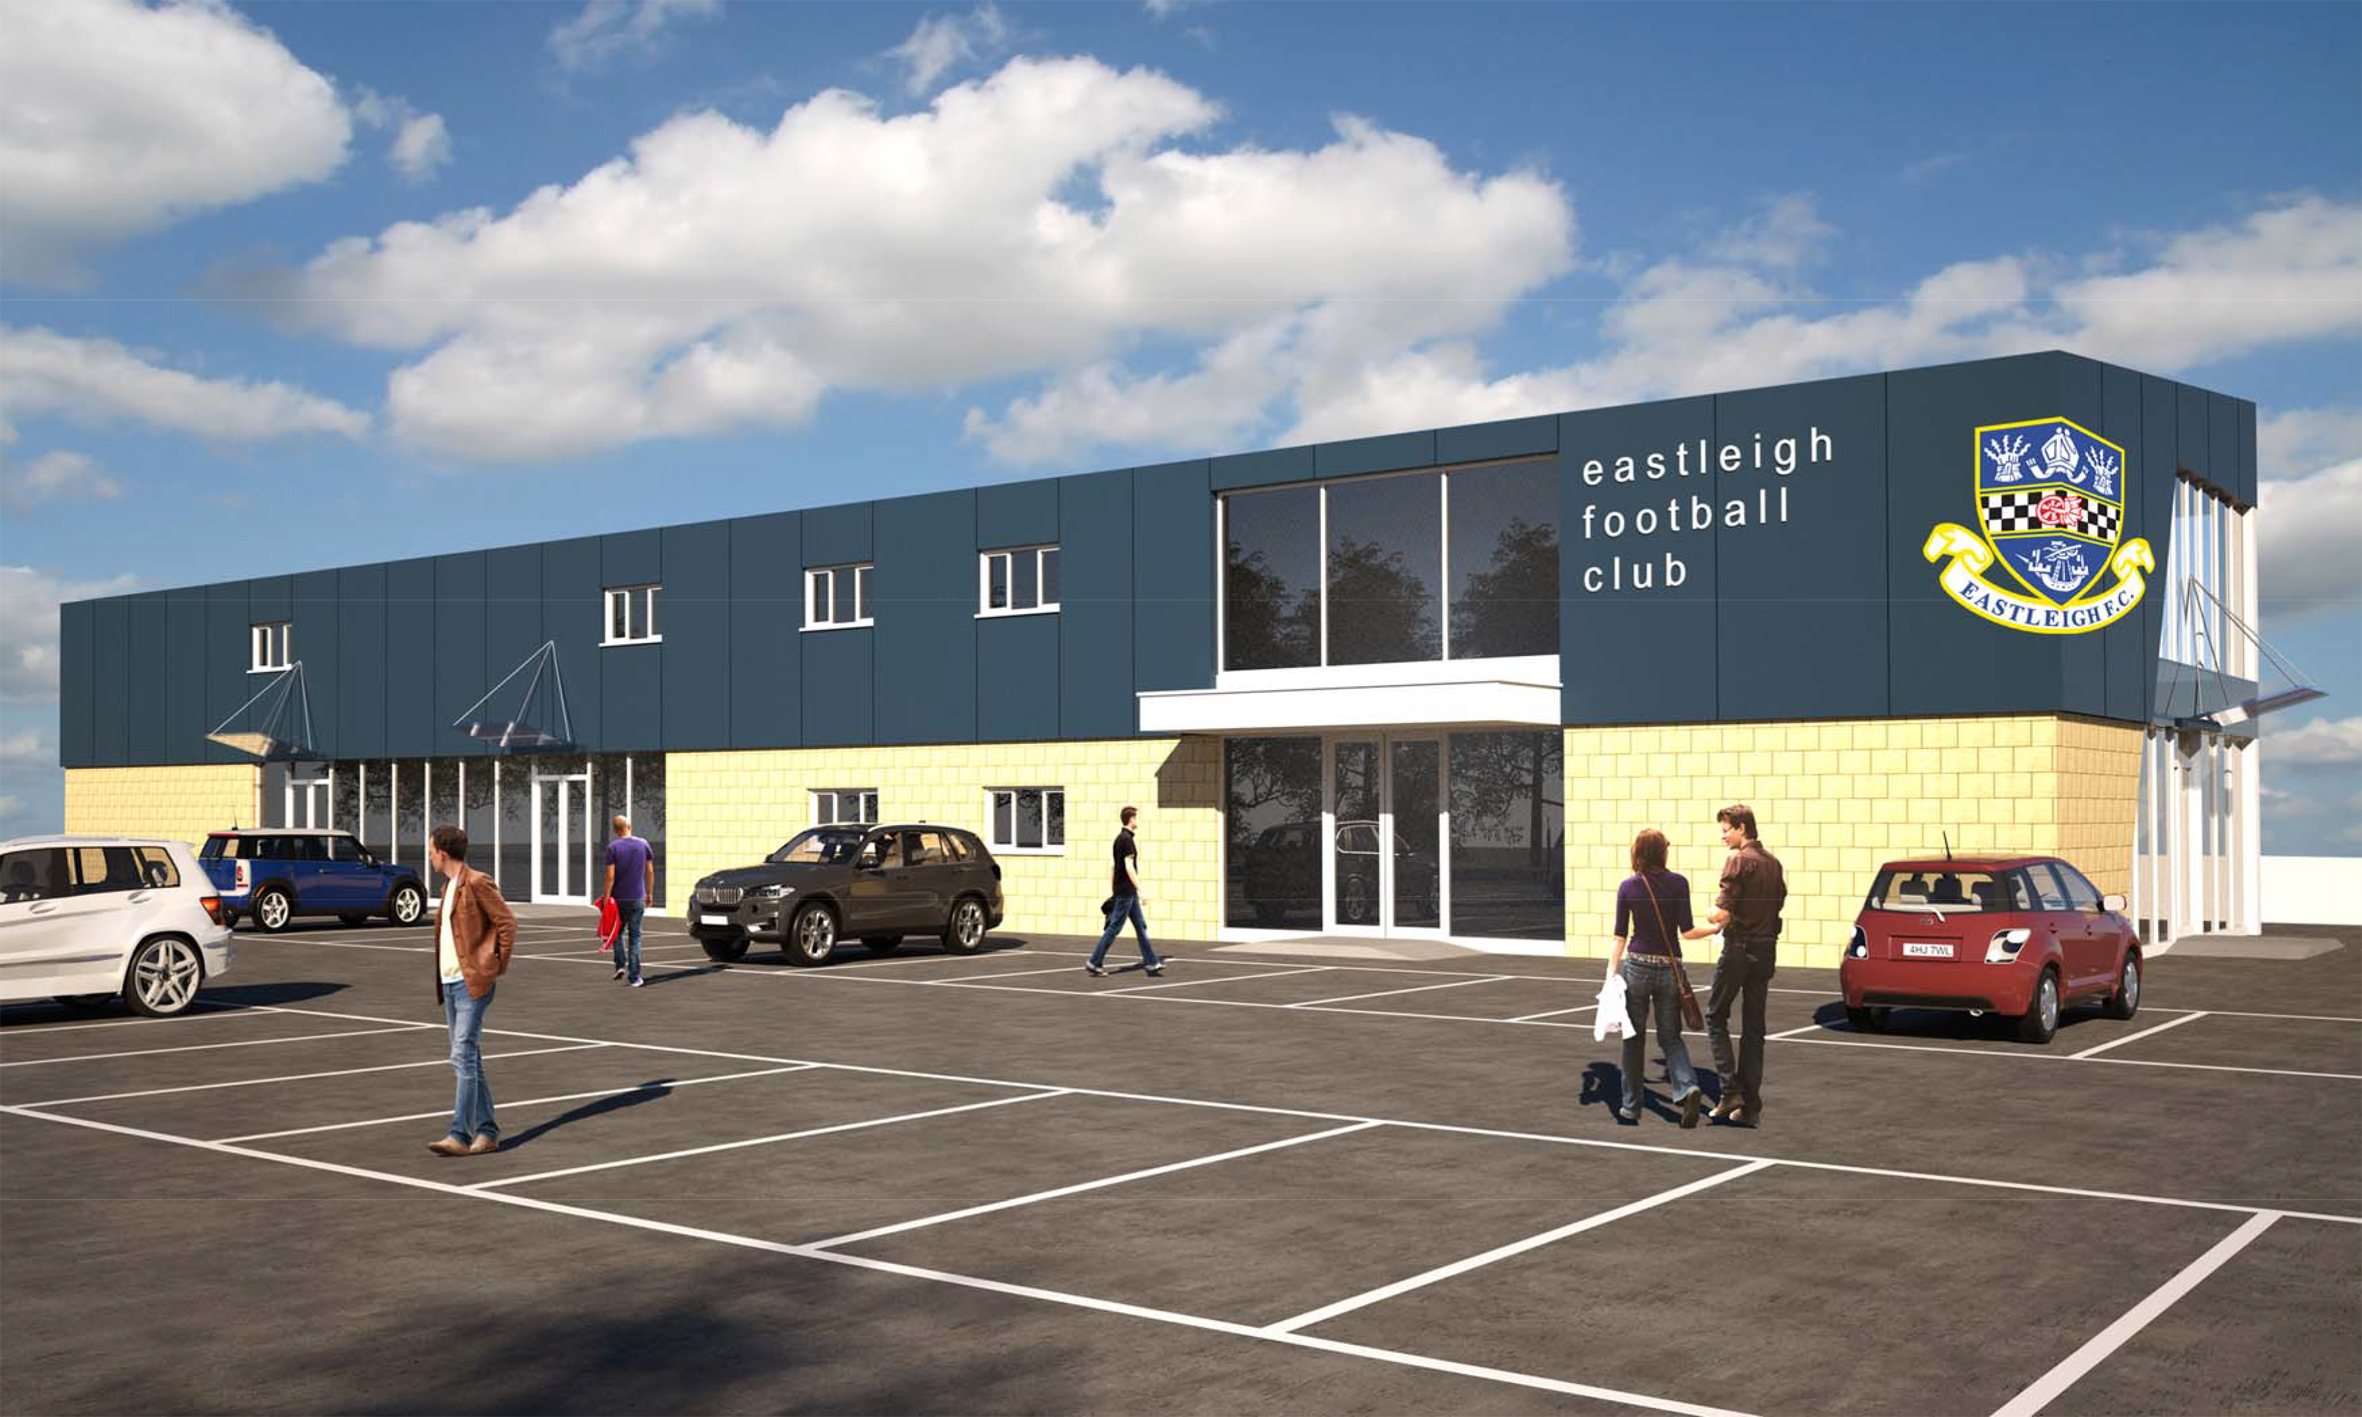 Eastleigh FC image 2